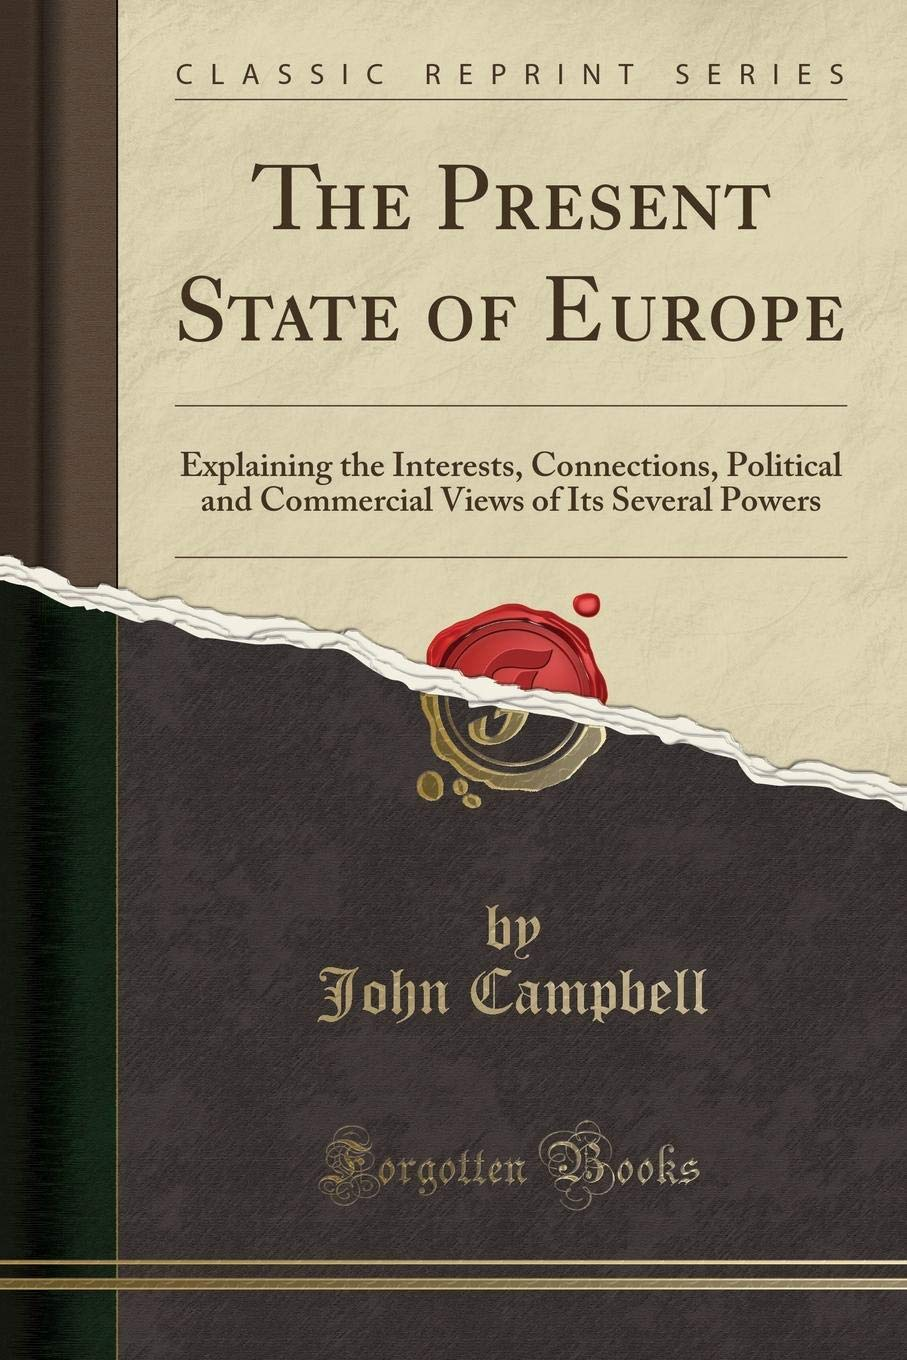 Download The Present State of Europe: Explaining the Interests, Connections, Political and Commercial Views of Its Several Powers (Classic Reprint) pdf